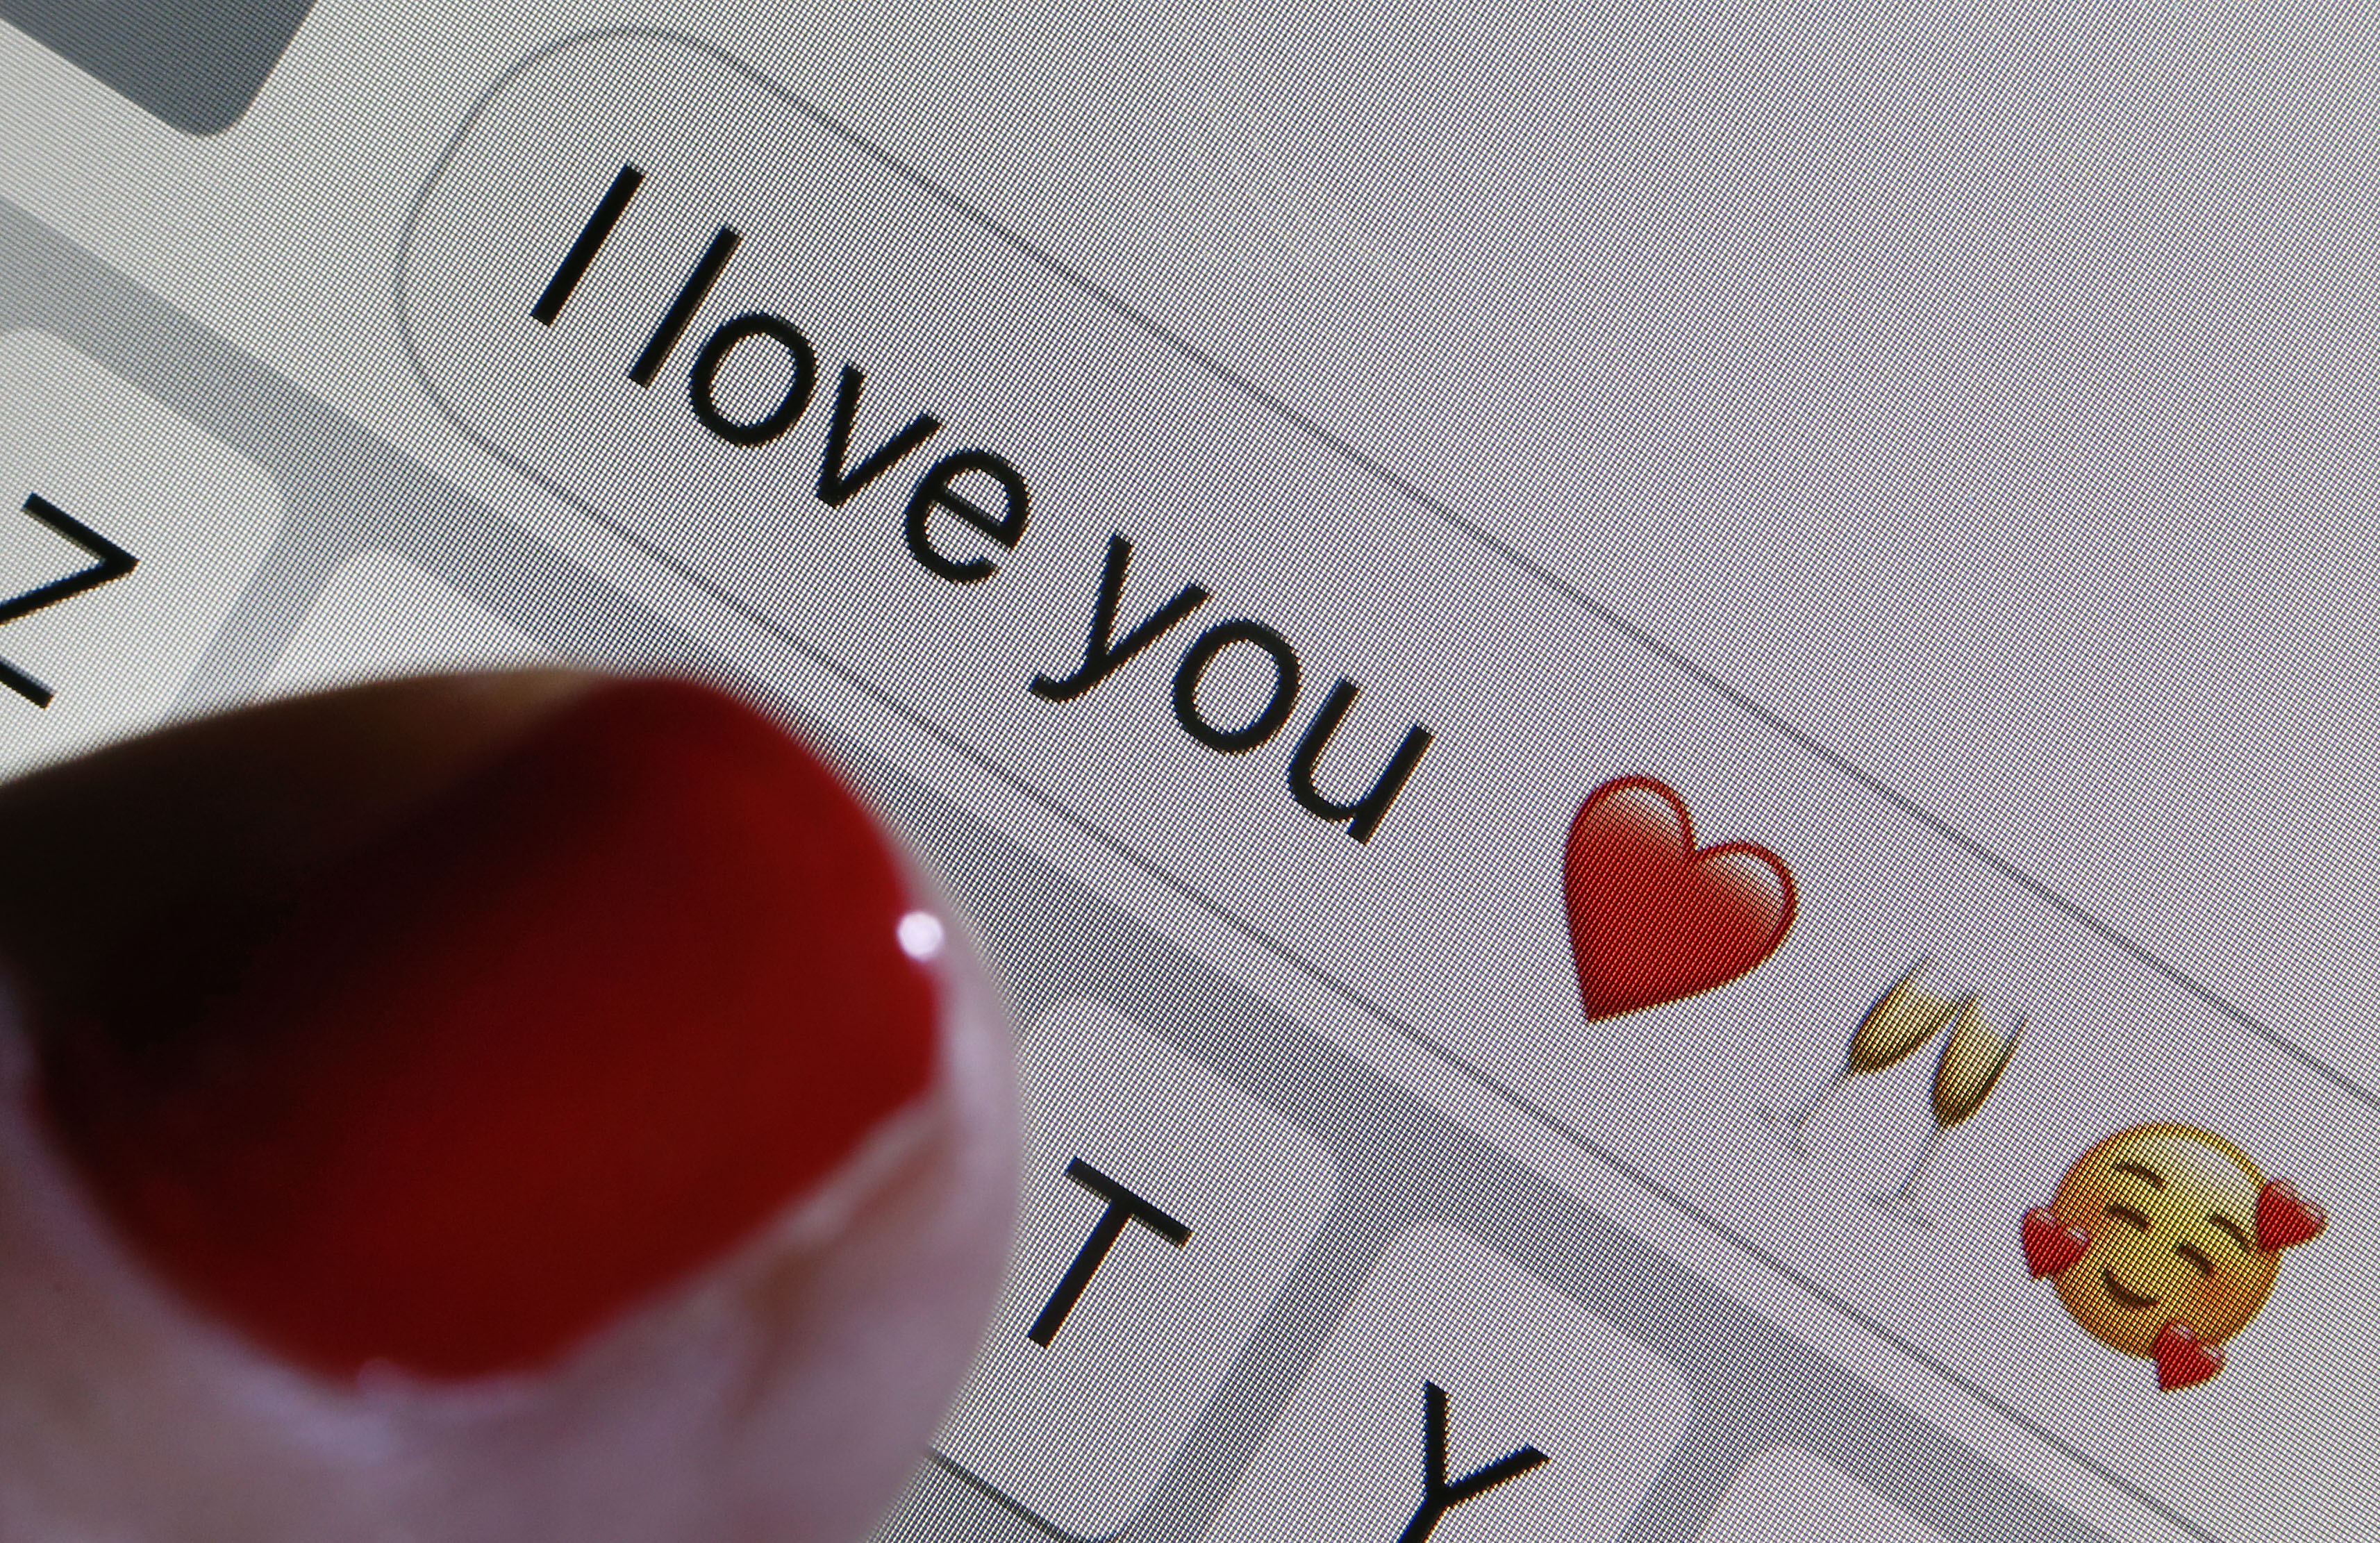 Study: People who frequently use emojis with potential partners have more romance, intimacy